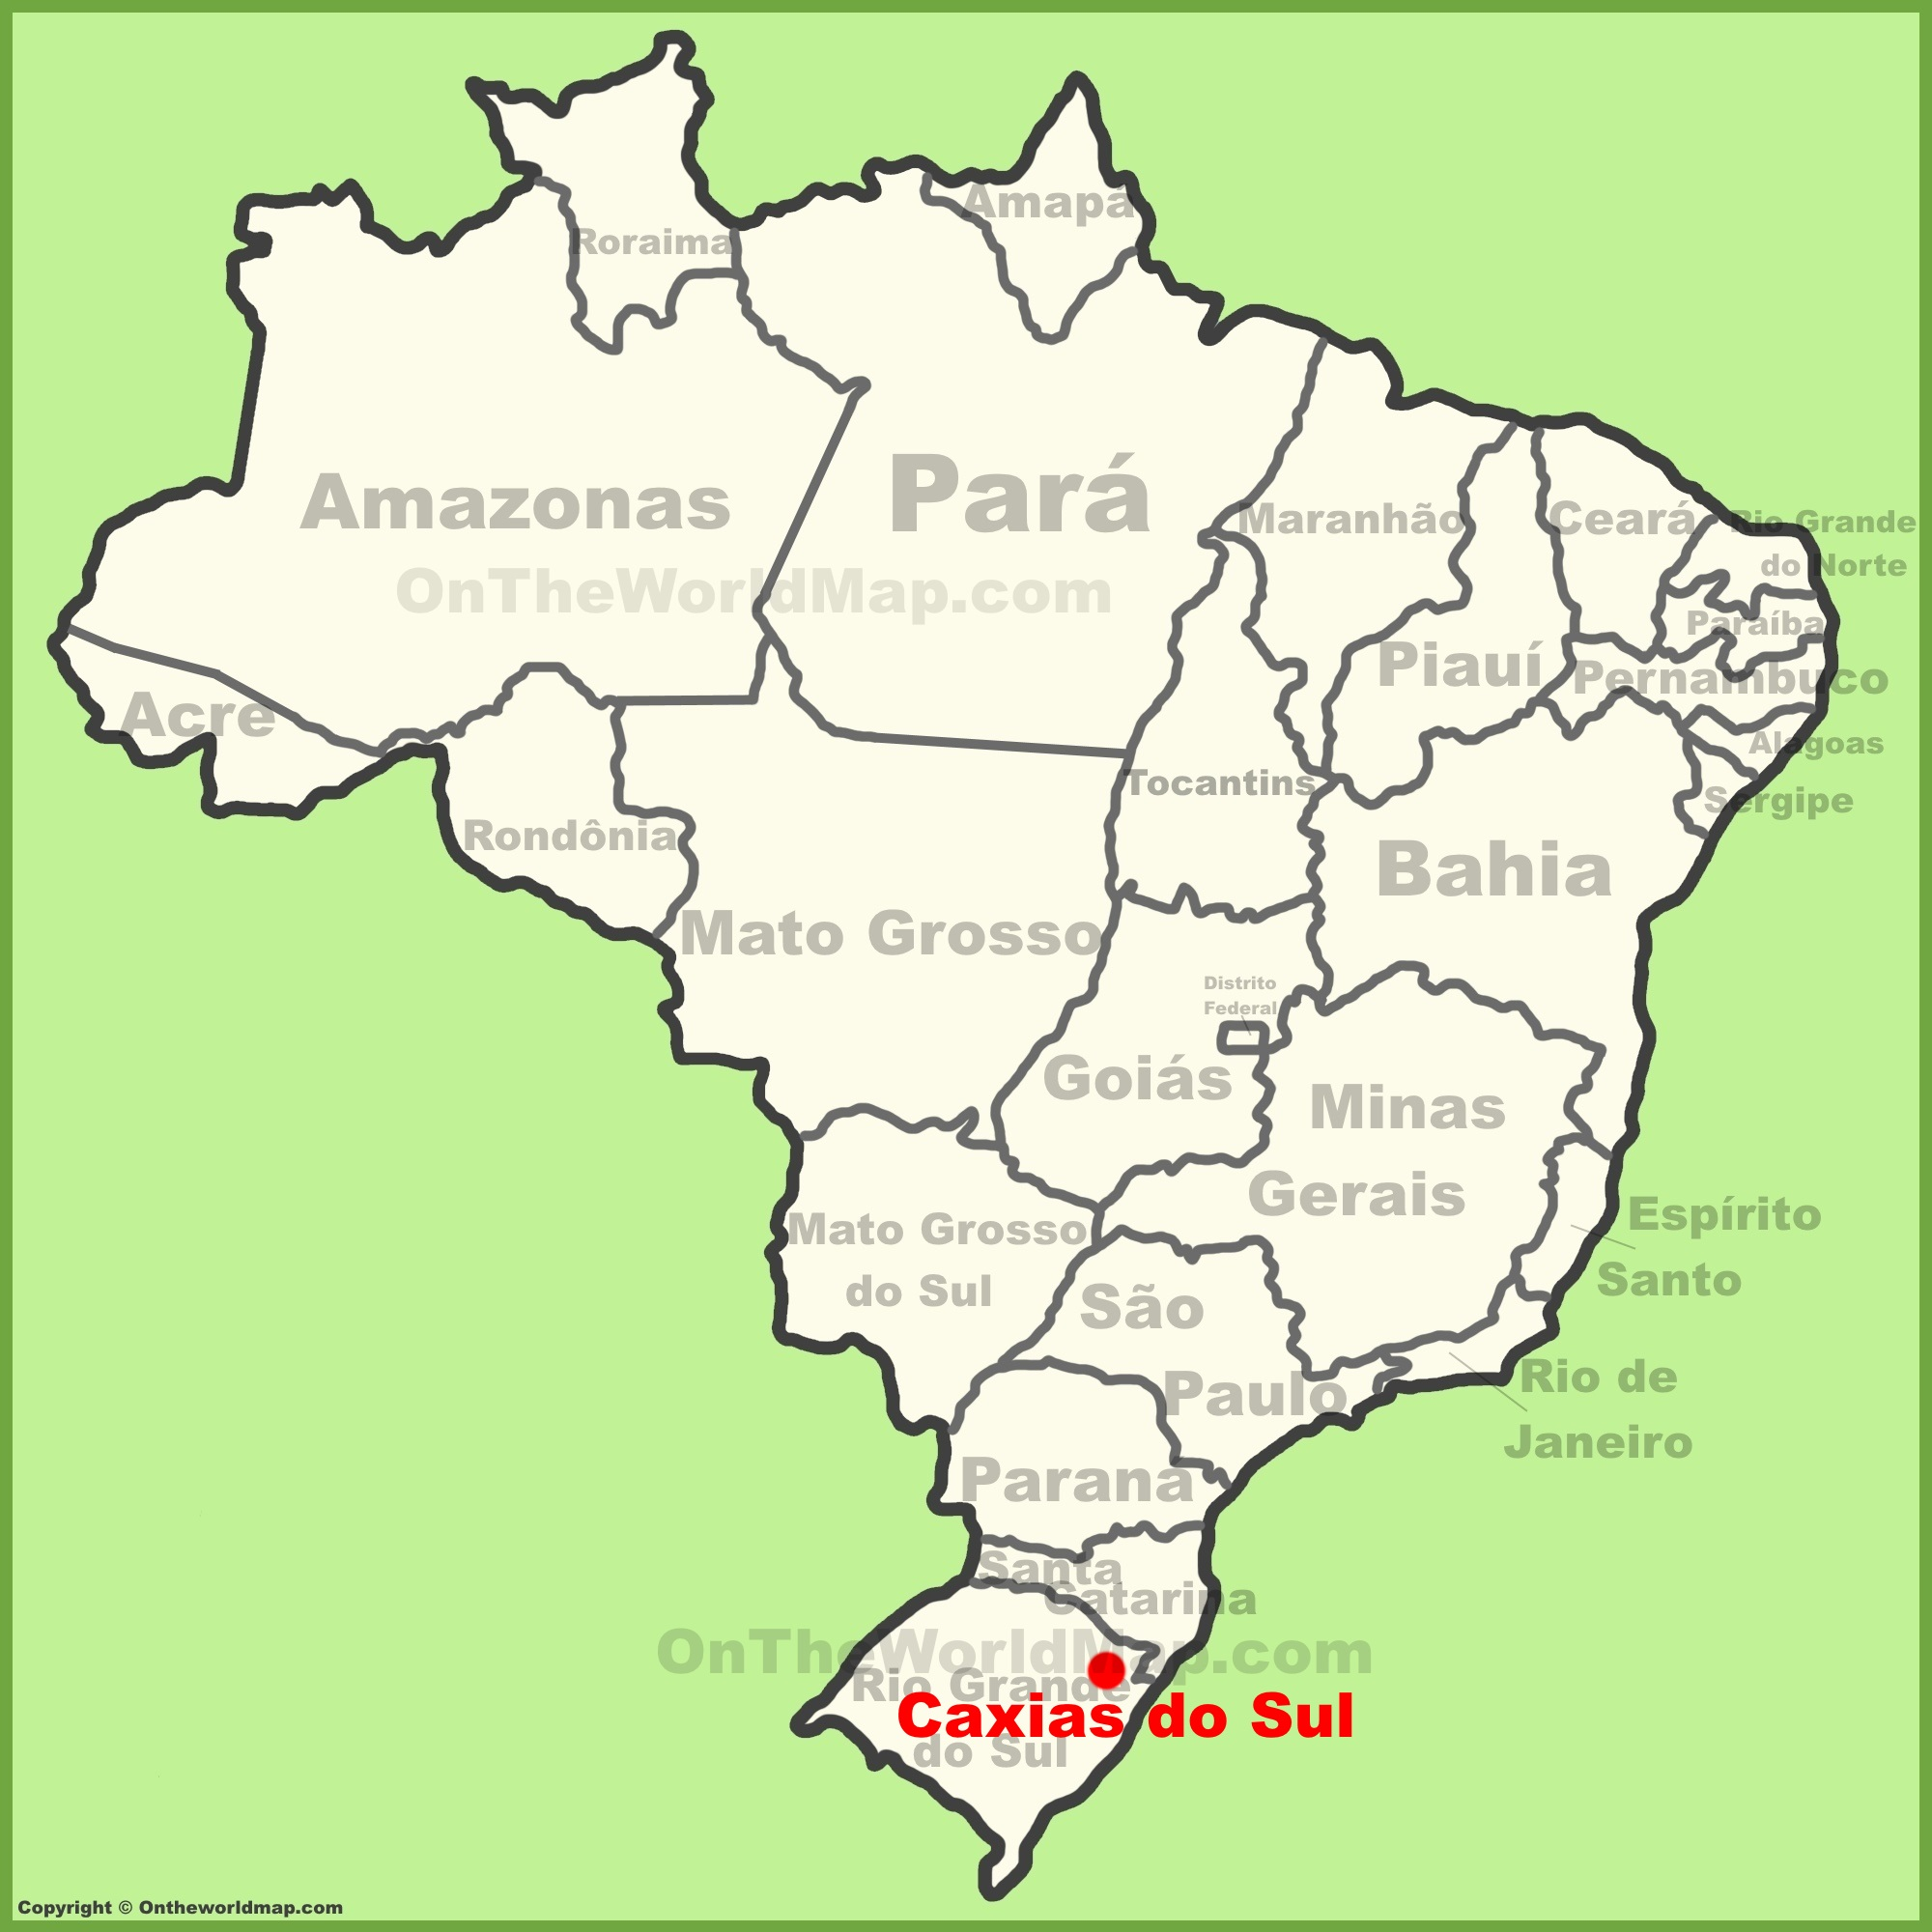 Caxias do Sul location on the Brazil map